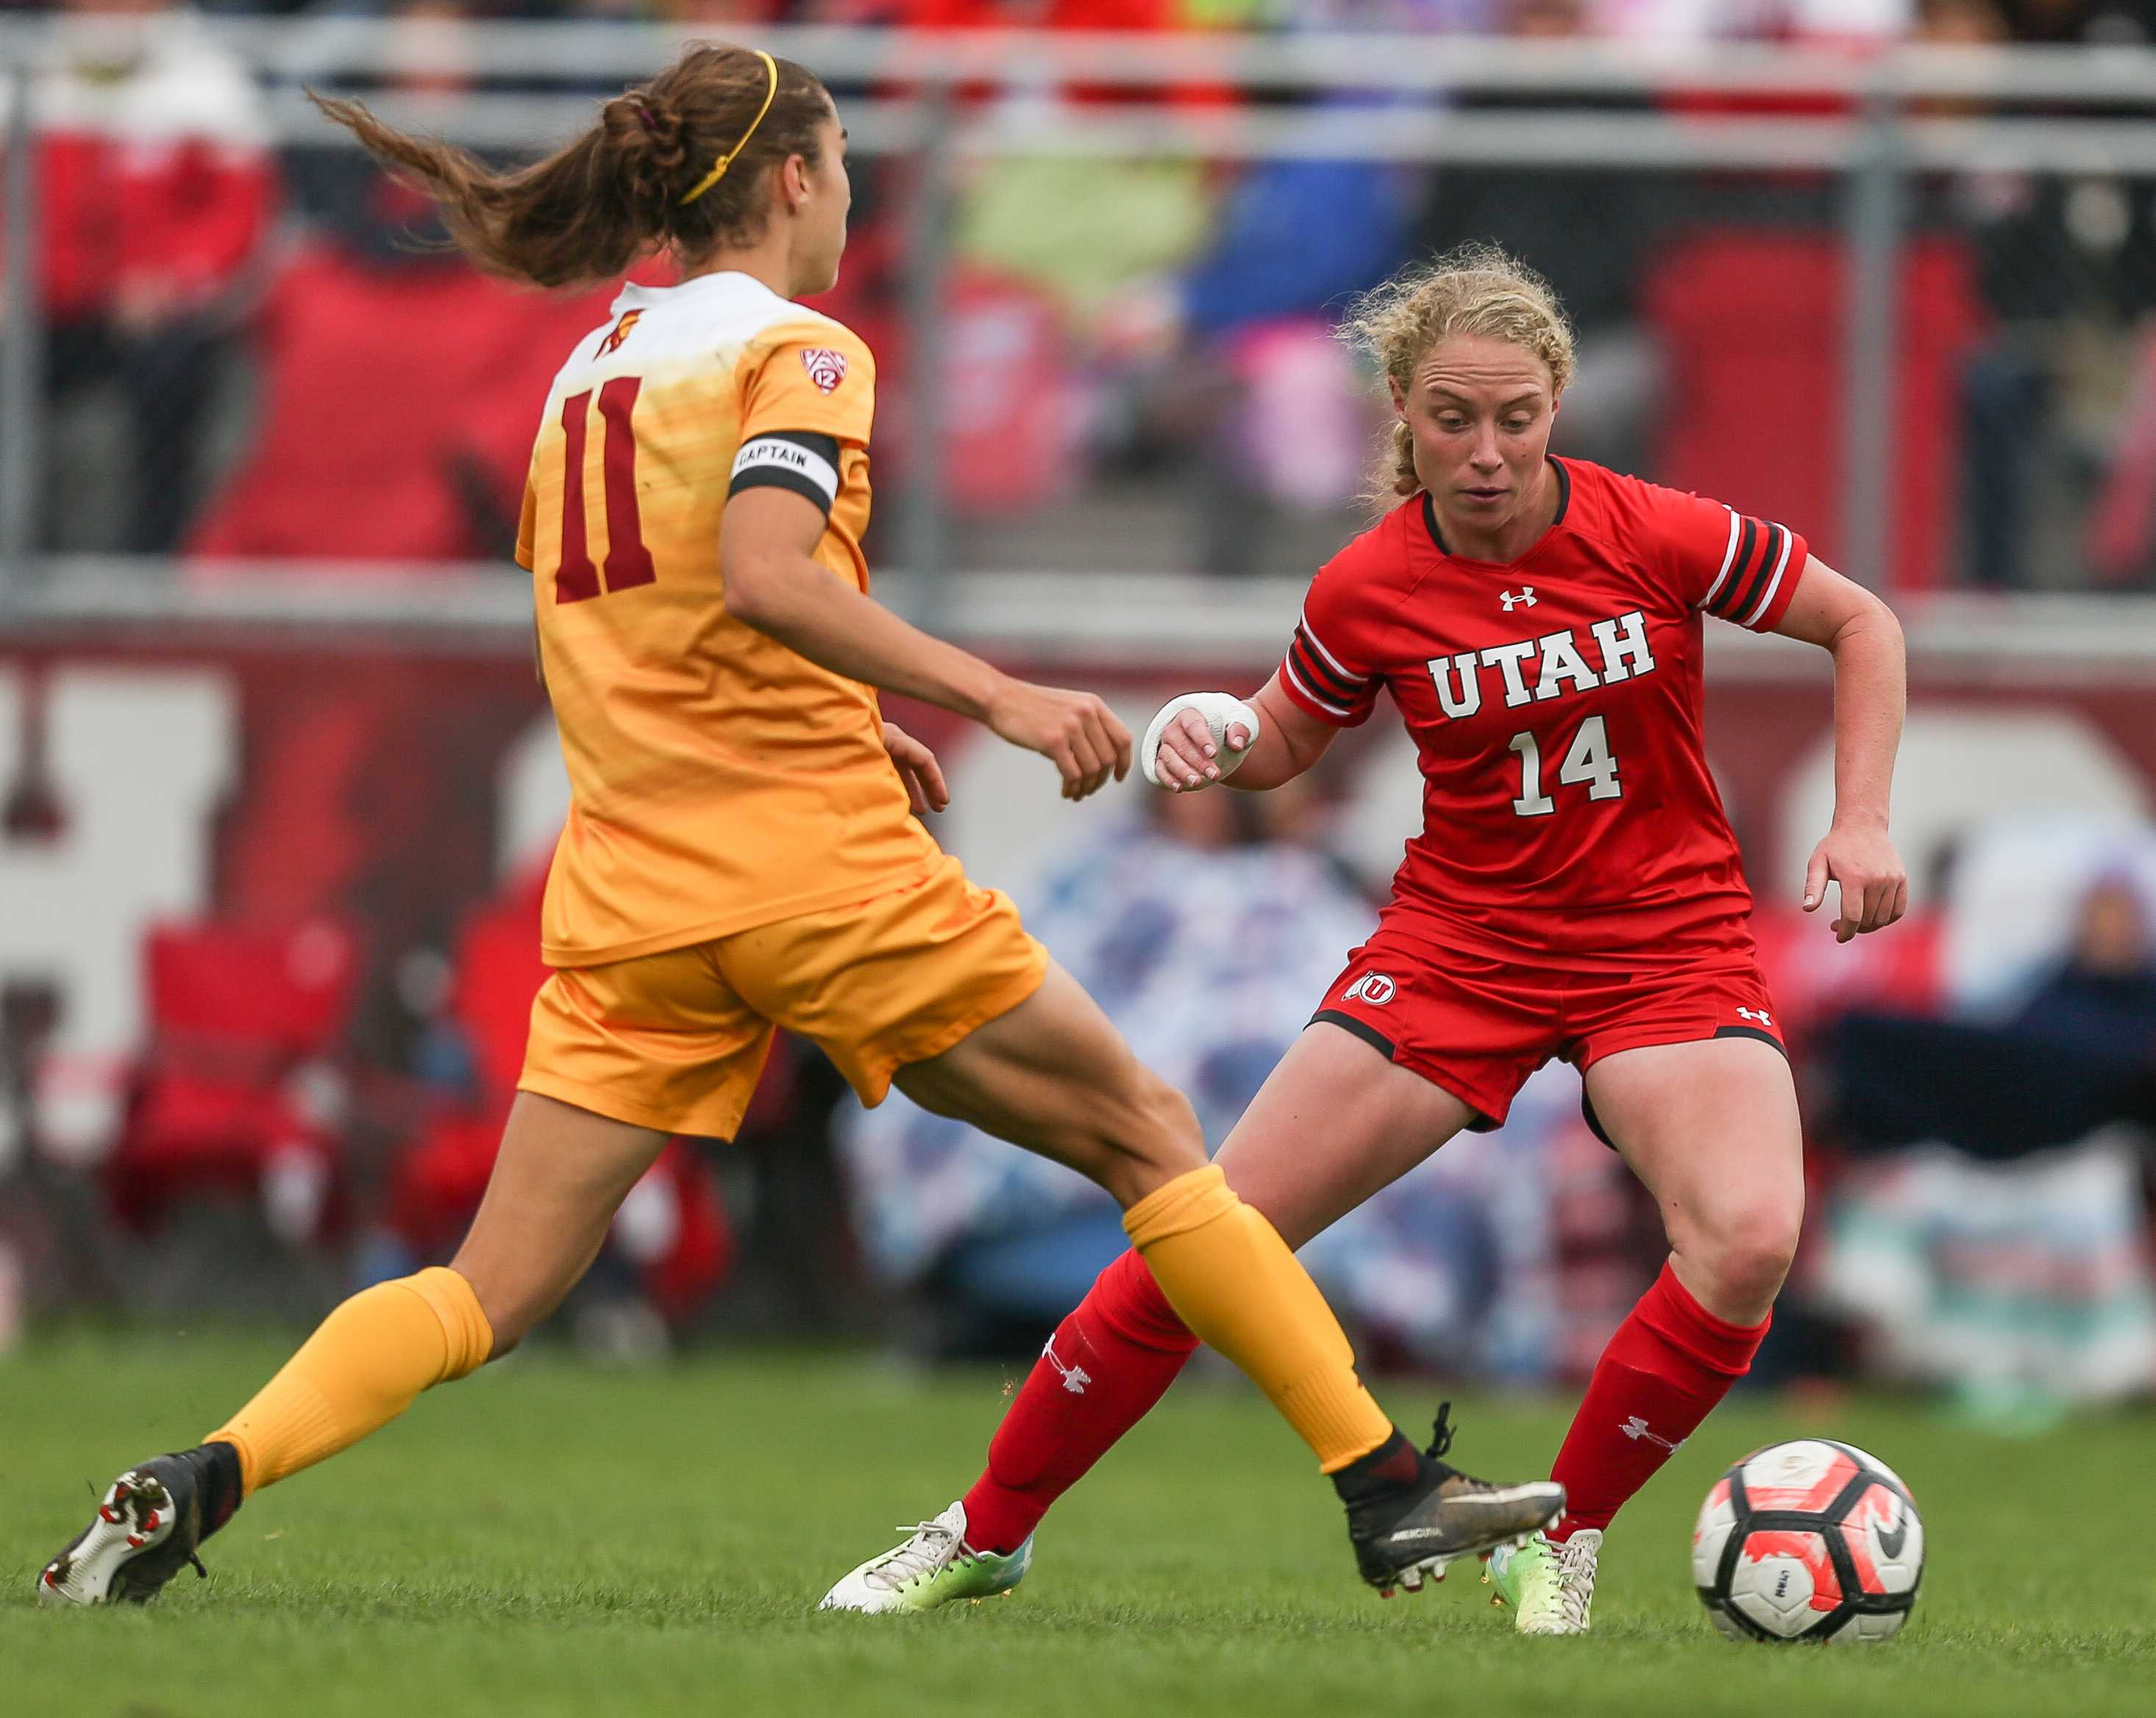 Paola Van Der Even (14) dribbles past Nicole Molen (11) during the Utah Utes Women's soccer tie game versus University of Southern California at Ute Soccer Field in Salt Lake City, UT on Saturday, September 23, 2017.  (Photo by Cassandra Palor/ Daily Utah Chronicle)